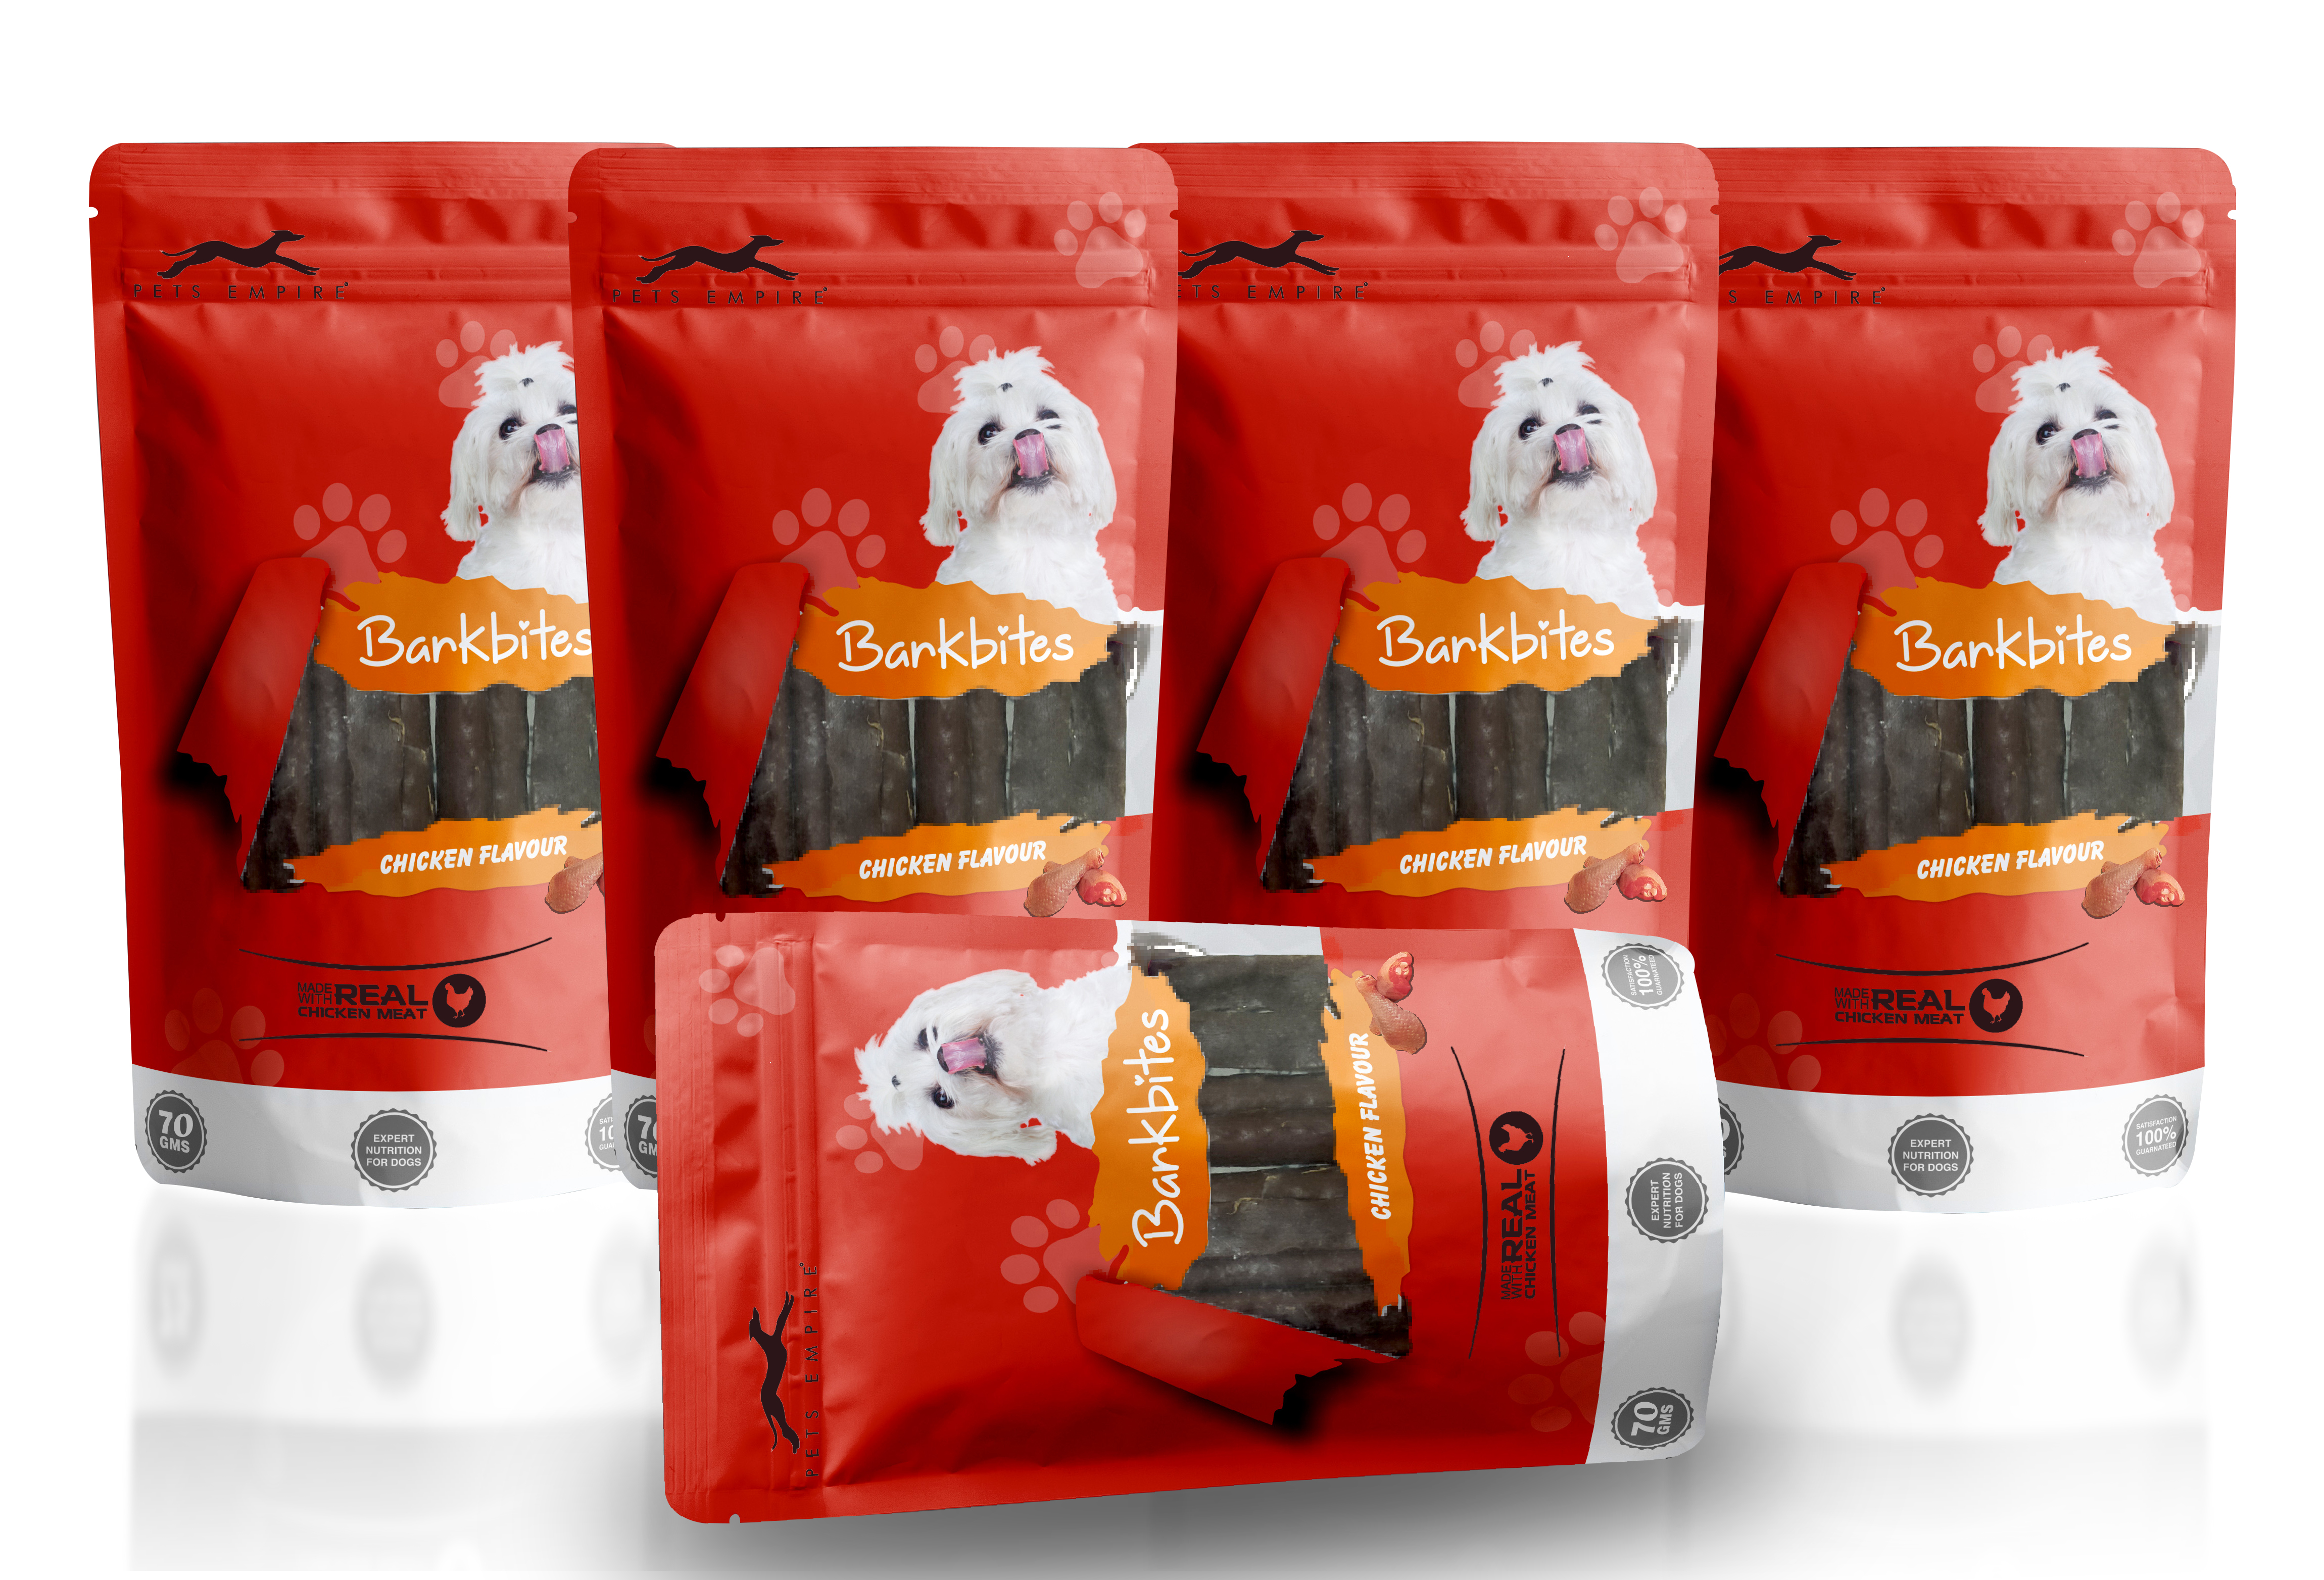 Pets Empire Barkbites Dog Treats 70 GMS (PACK OF 5, CHICKEN FLAVOUR)